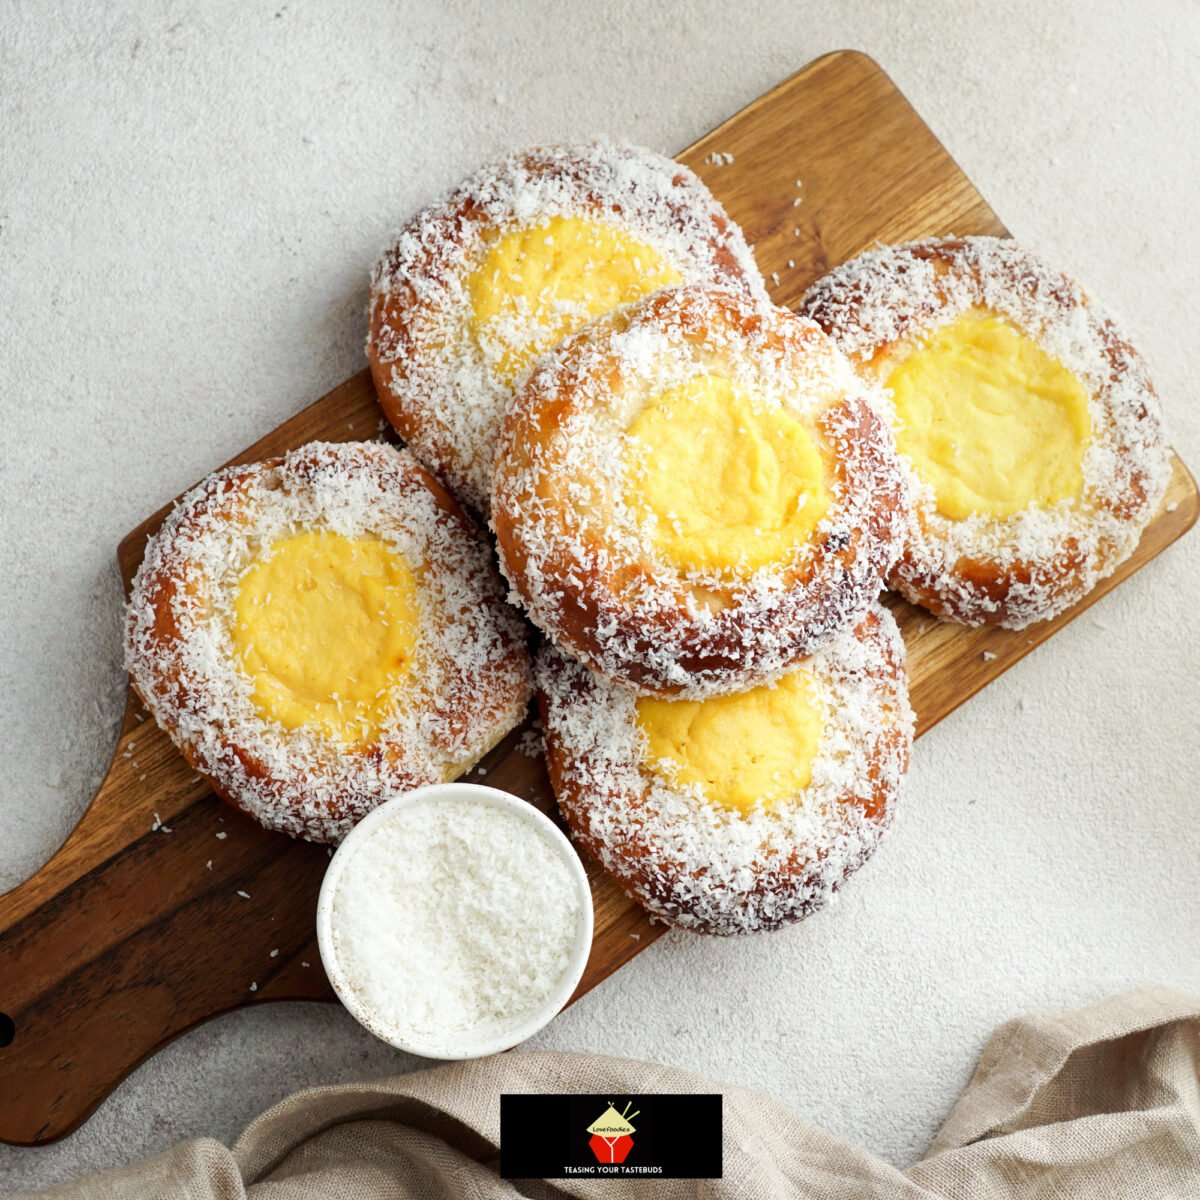 Custard Filled Buns. Light, fluffy, soft, vanilla custard filled buns. Eat these sweet bread buns warm or cold, I like them just from the oven! Freezer friendly too